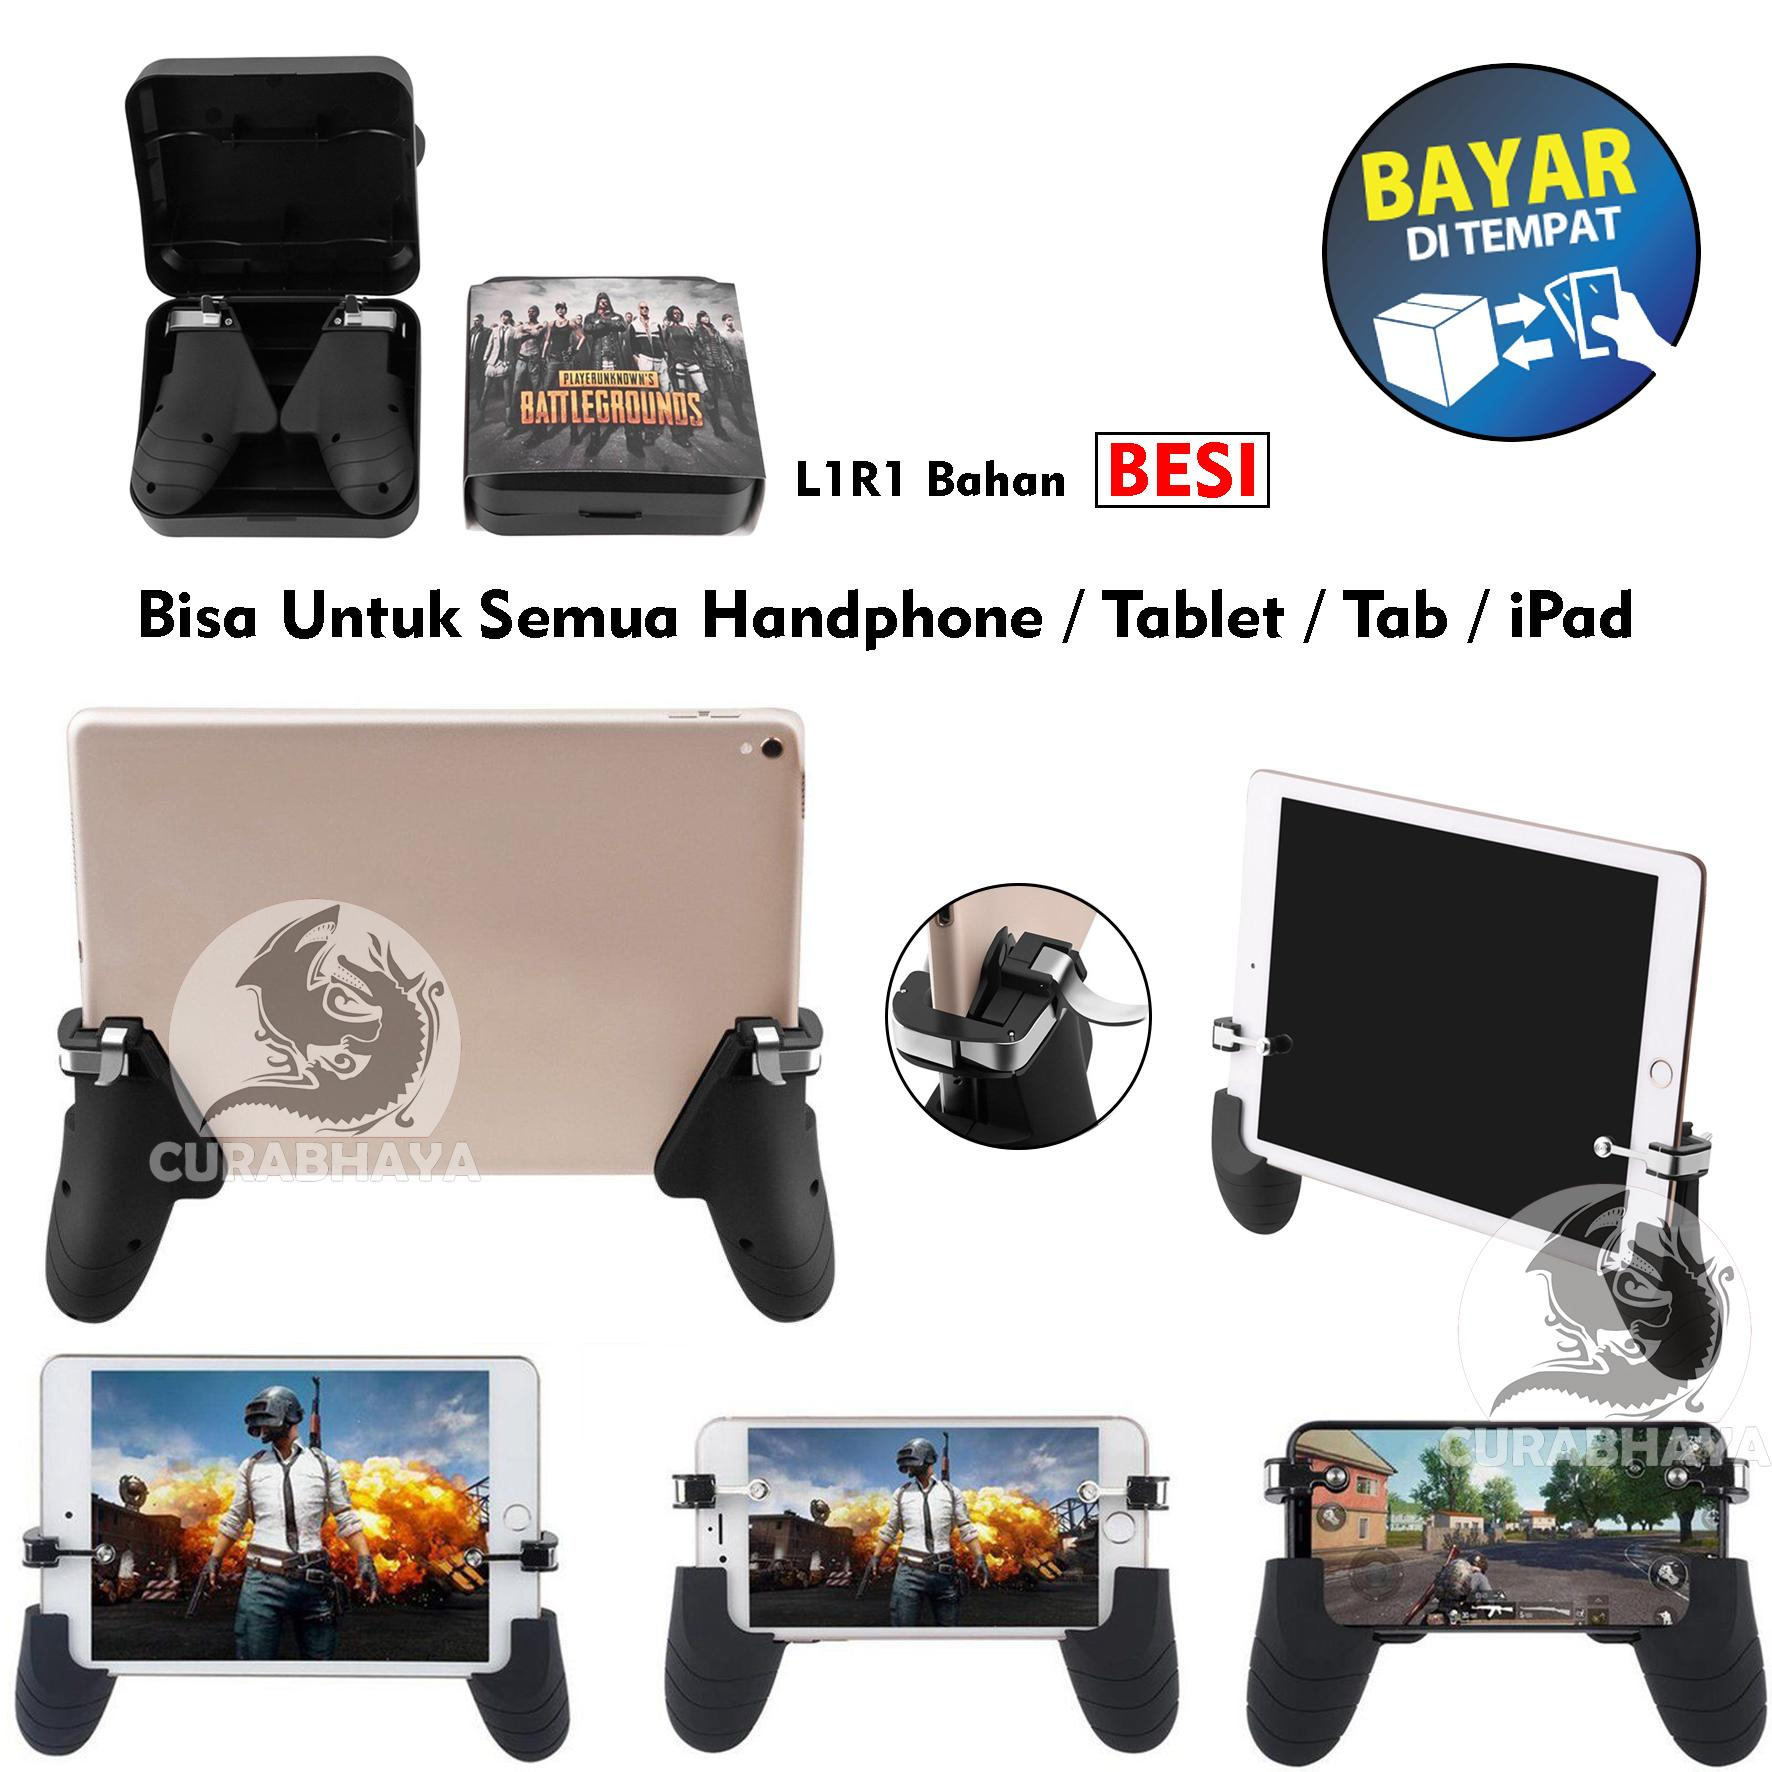 R9 Gamepad Controller MOBA FPS Joypad Handle Grip Android iOS Universal Tablet Tab iPad for PUBG